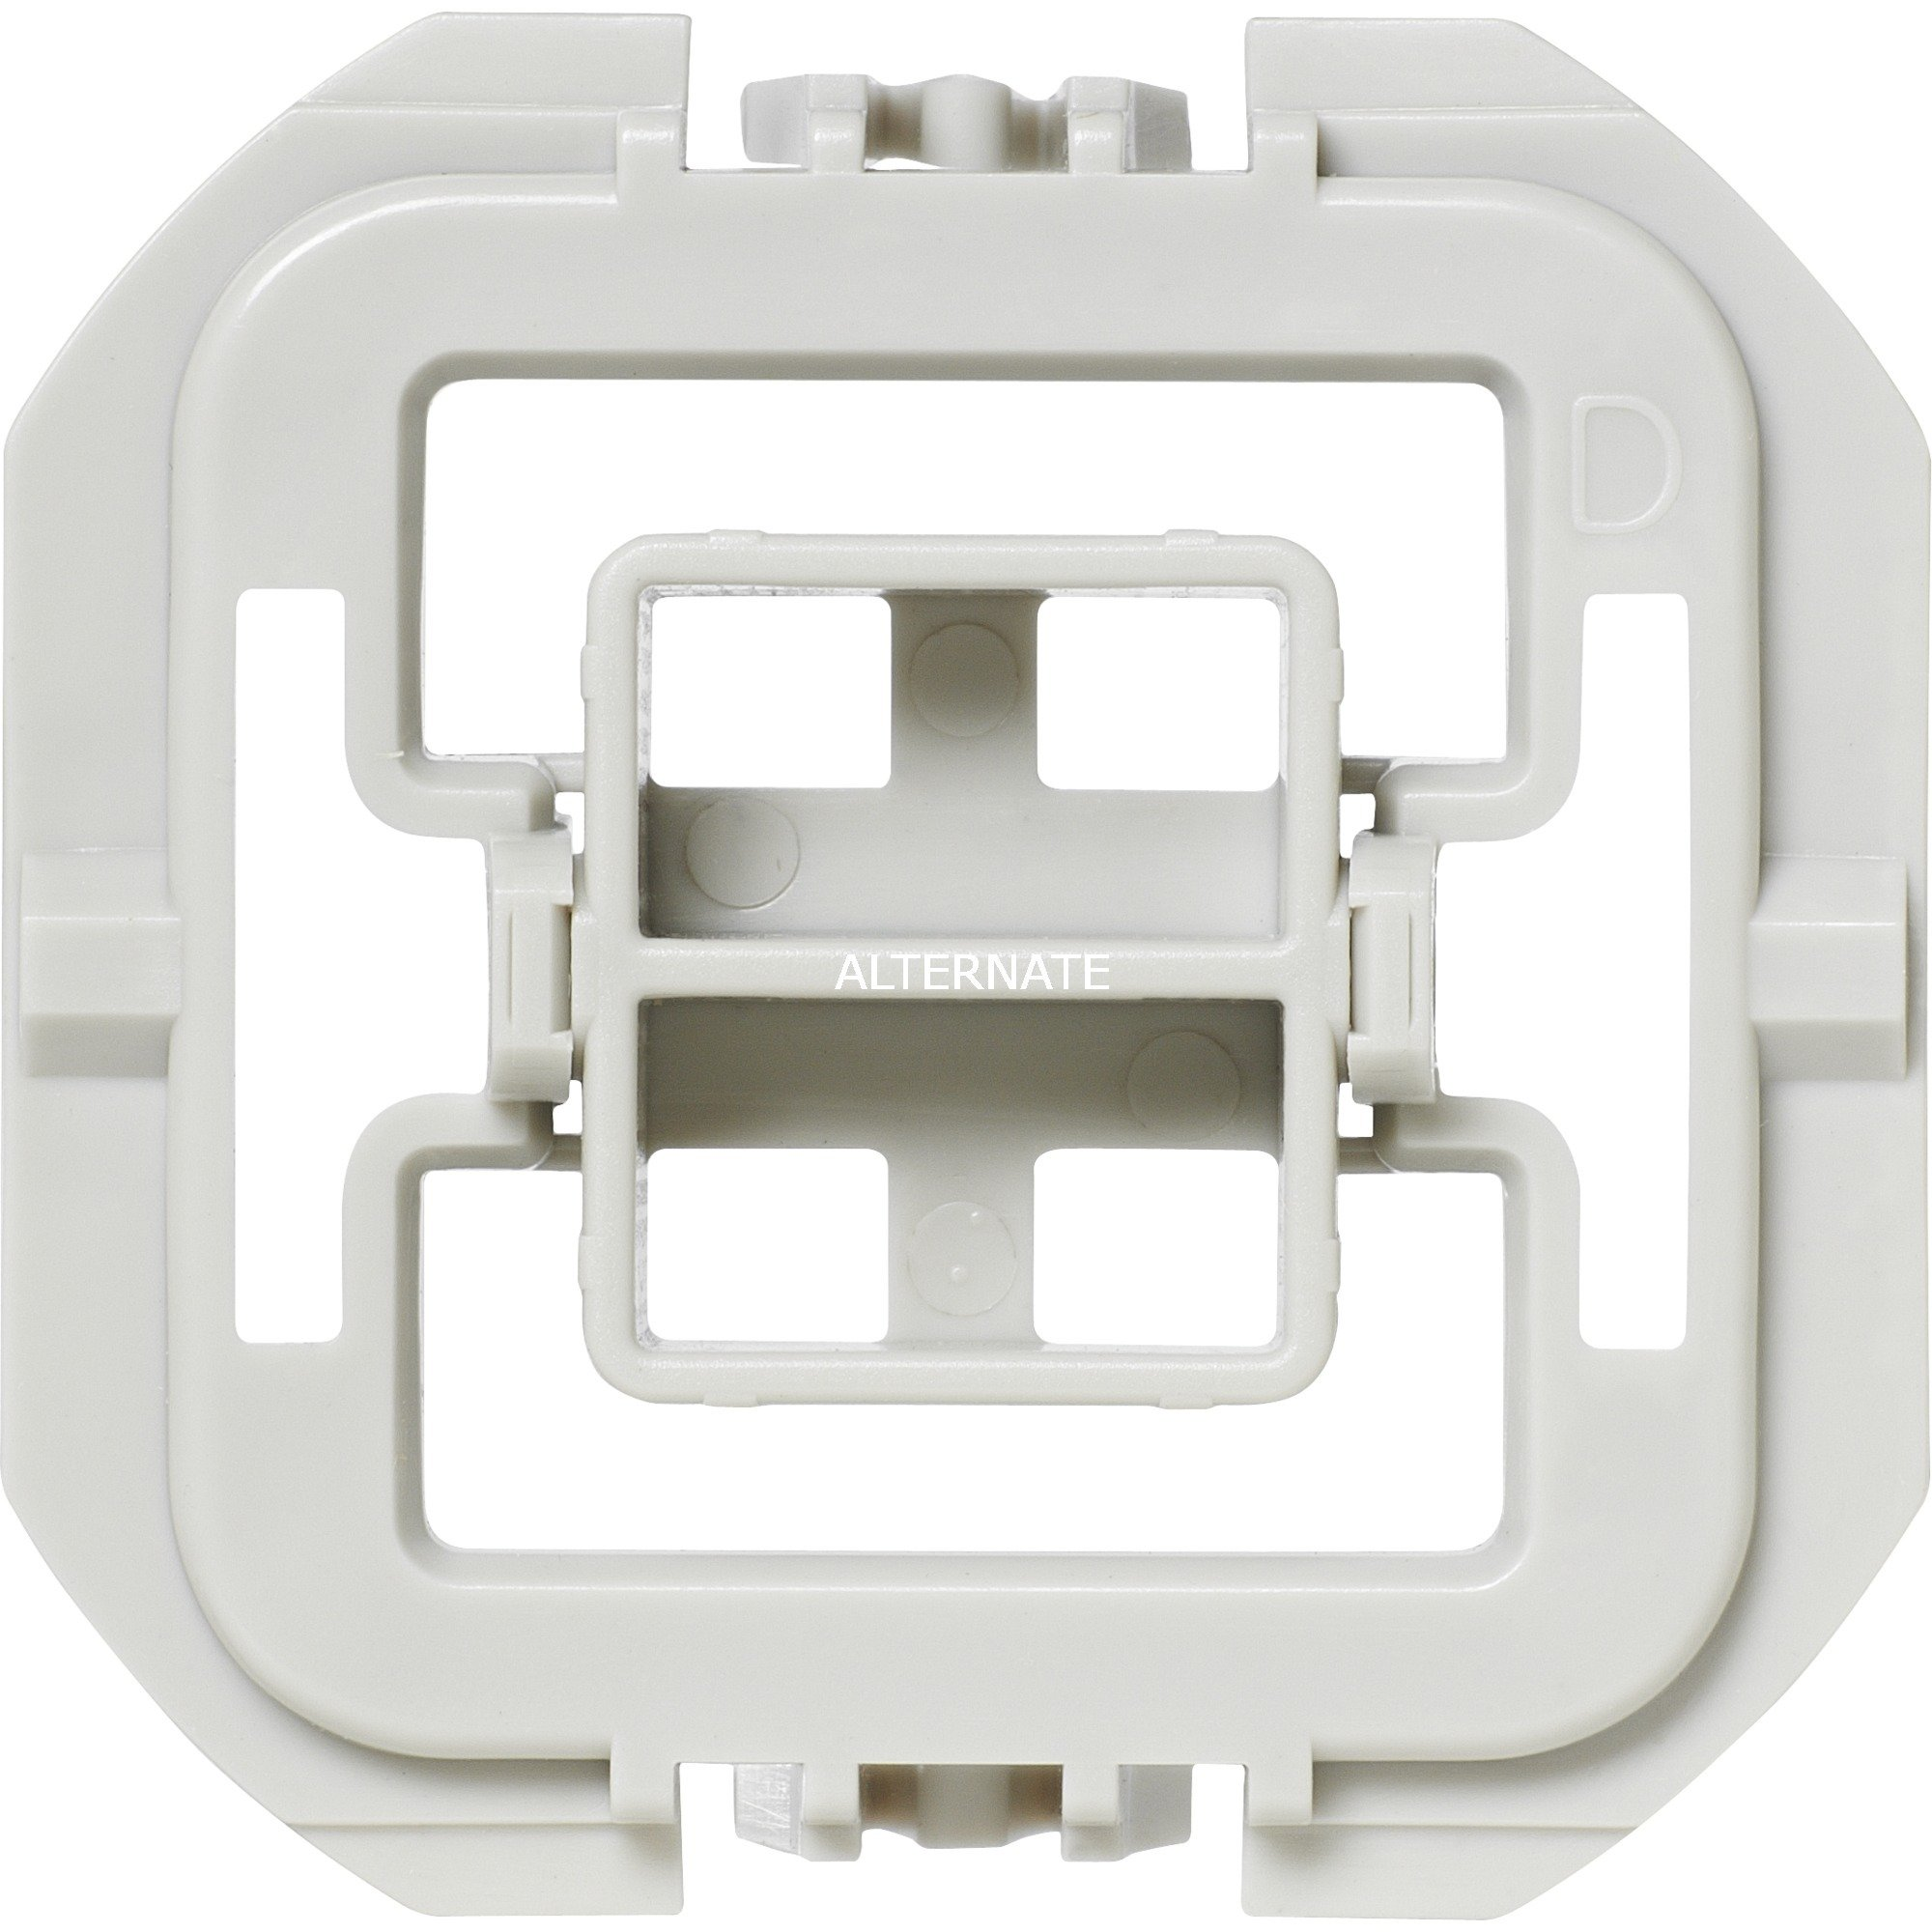 EQ3-ADA-DW Integrado Atenuador e interruptor Blanco, Adaptador